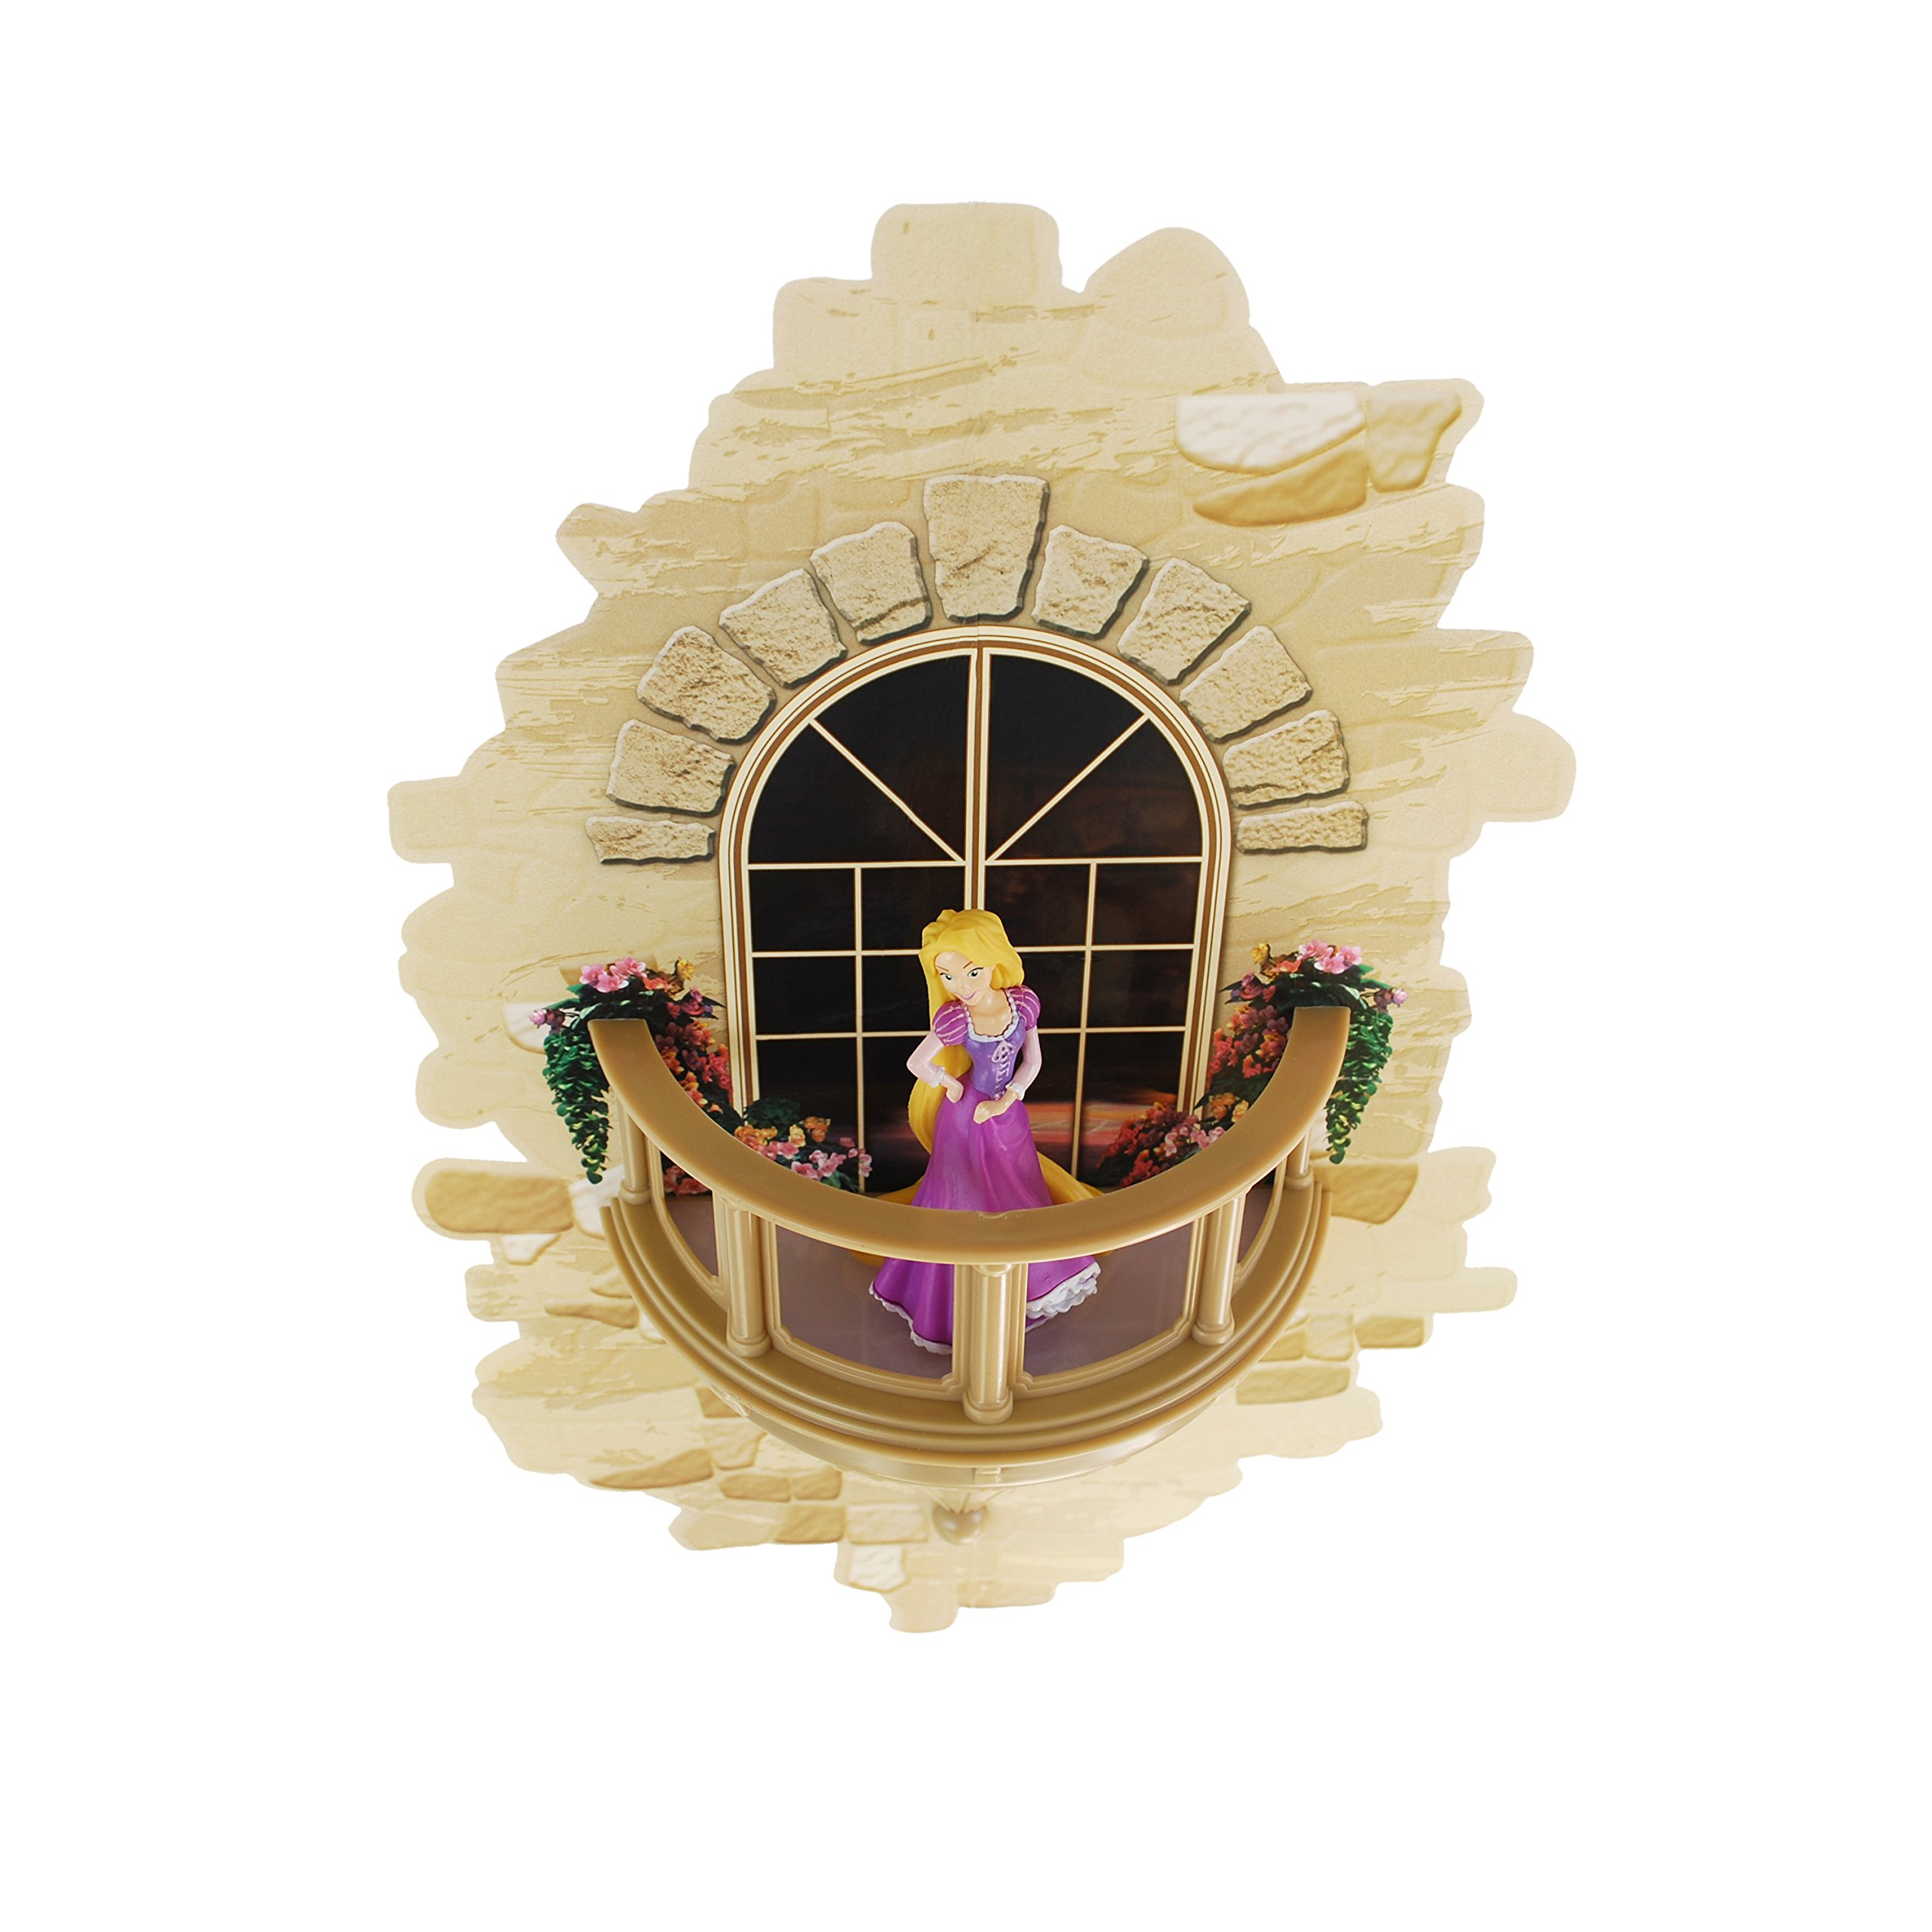 3DLightFX Disney Princess Rapunzel Balcony 3D Deco Light